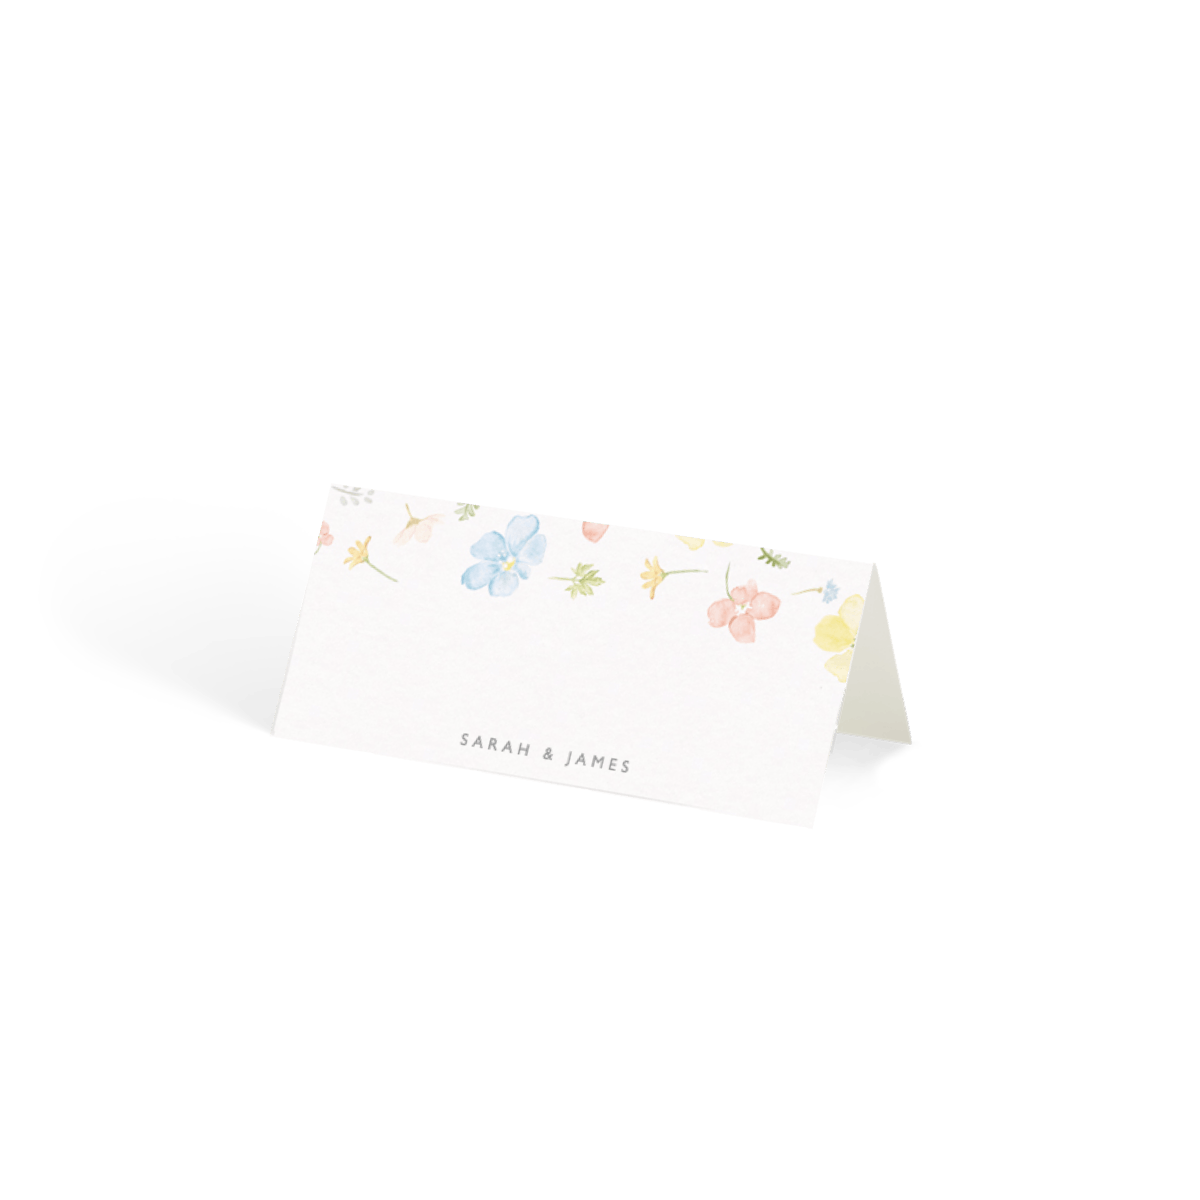 Https%3a%2f%2fwww.papier.com%2fproduct image%2f82354%2f8%2fpetite floral 19921 front 1562082705.png?ixlib=rb 1.1